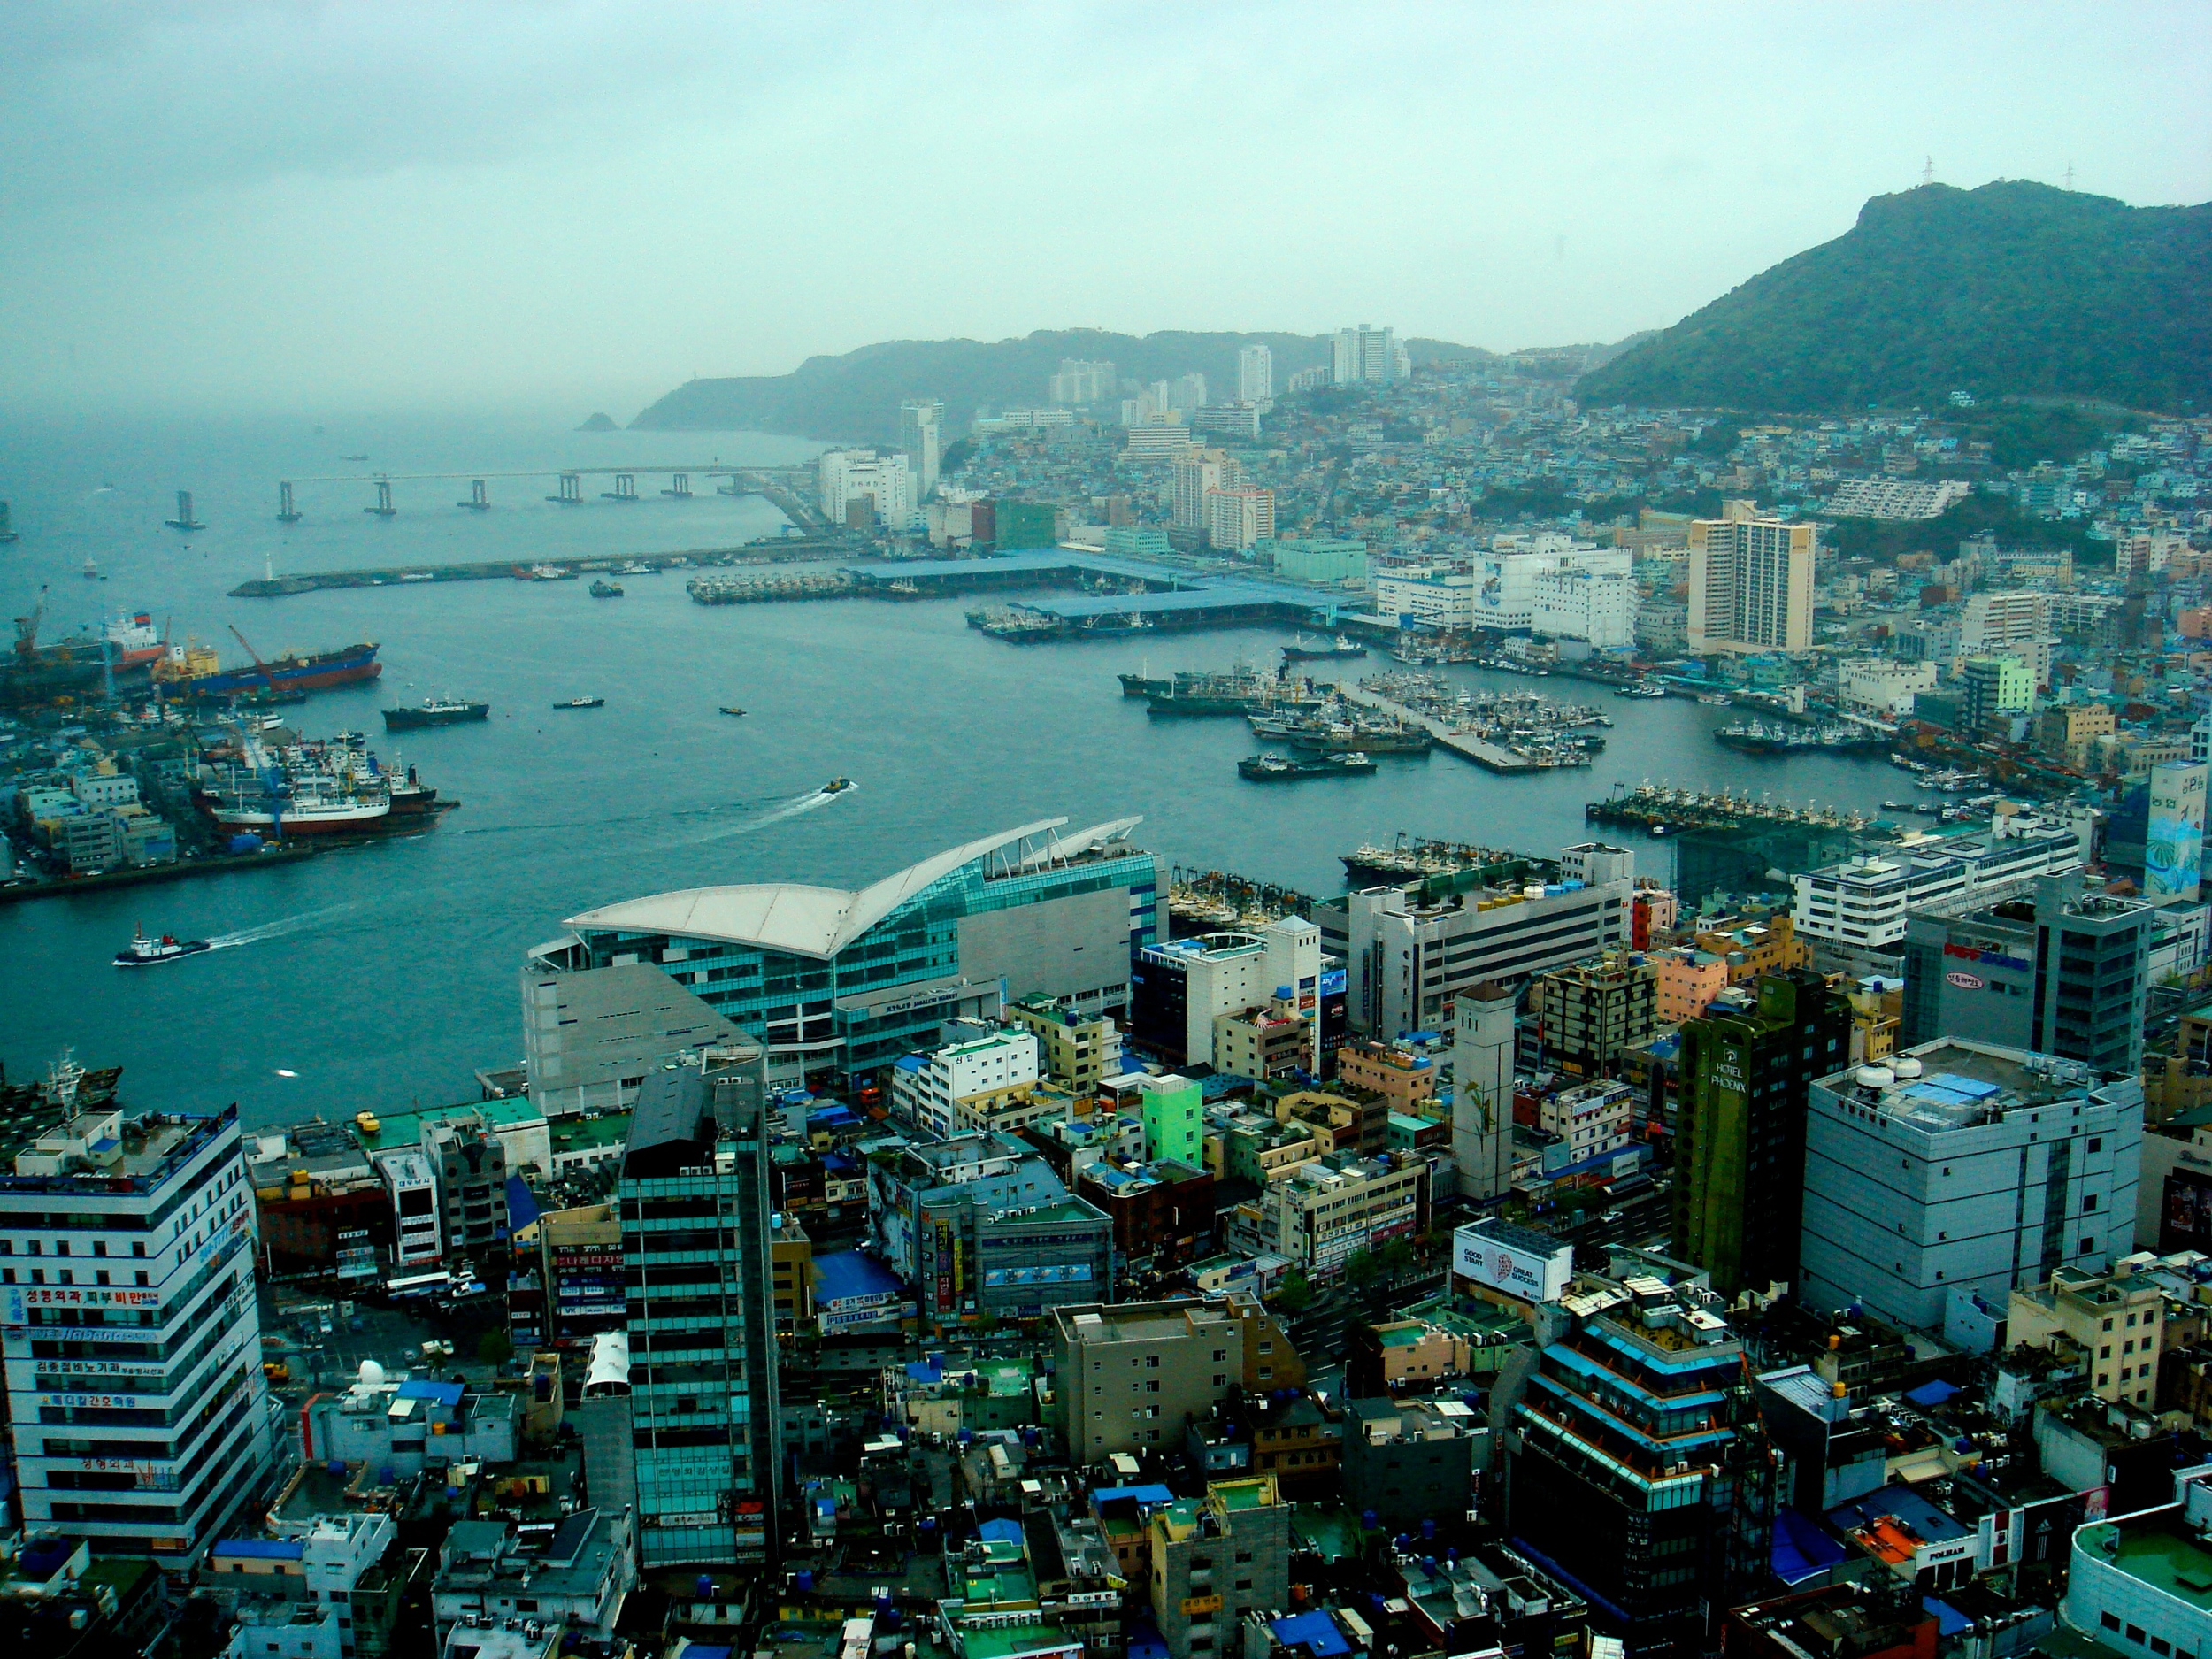 Busan — the second largest city in South Korea